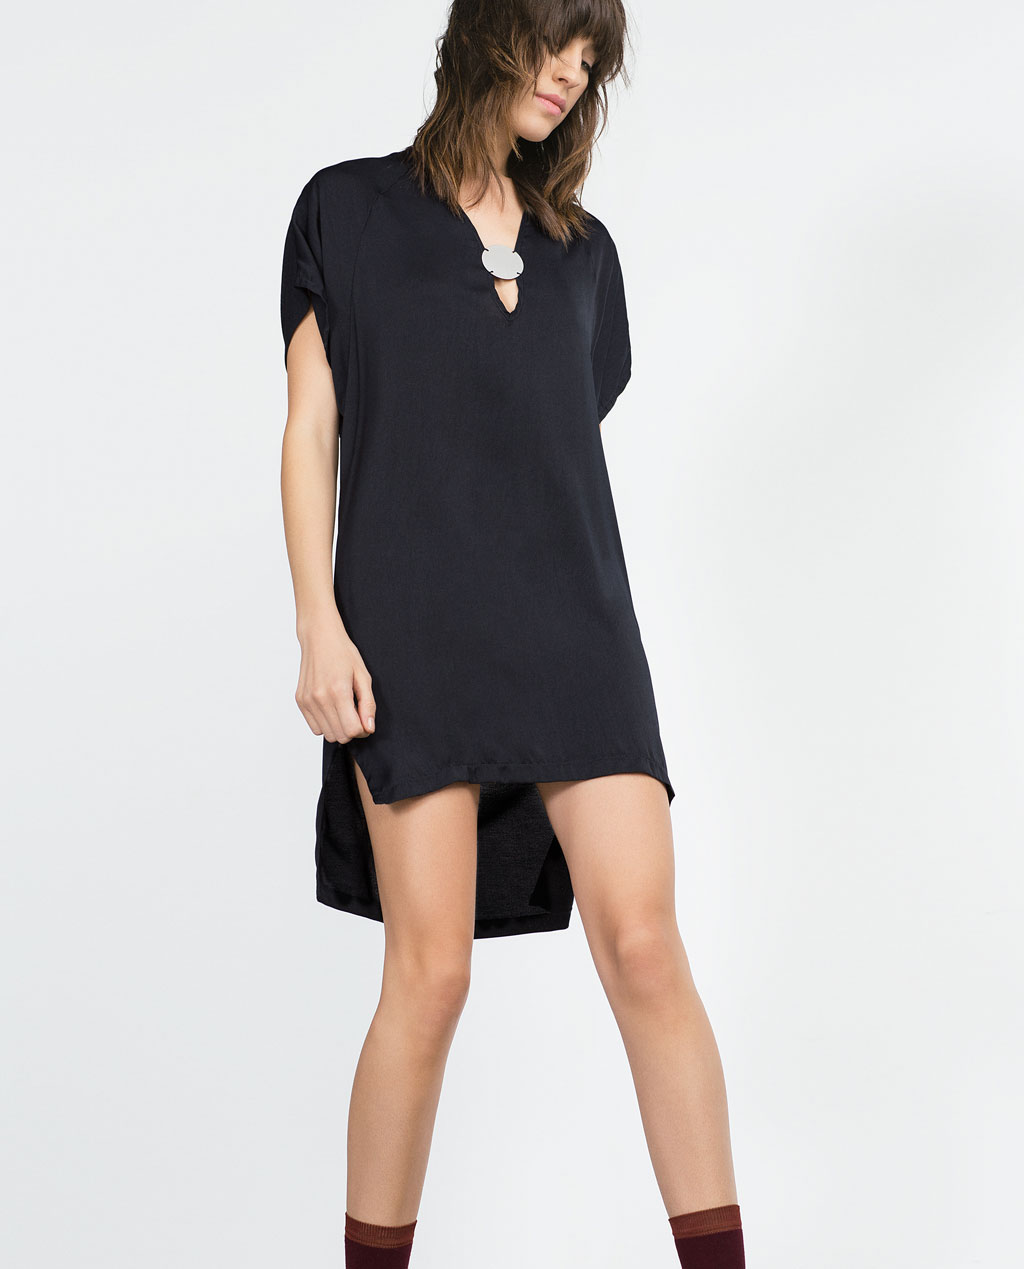 http://www.zara.com/ch/en/woman/dresses/view-all/metallic-appliqu%C3%A9-tunic-c733885p2931552.html